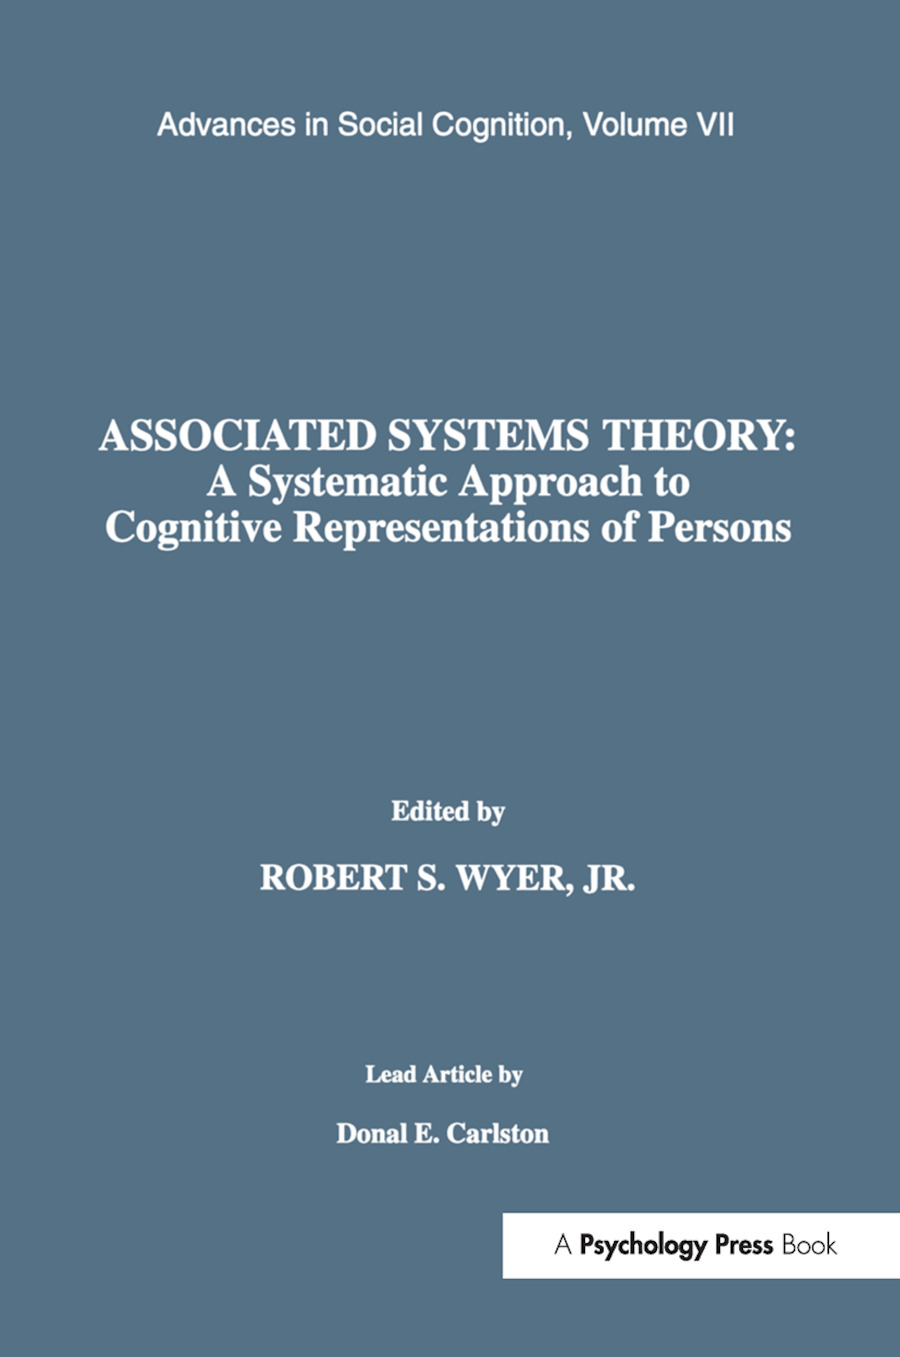 Associated Systems Theory: A Systematic Approach to Cognitive Representations of Persons: Advances in Social Cognition, Volume VII, 1st Edition (Paperback) book cover